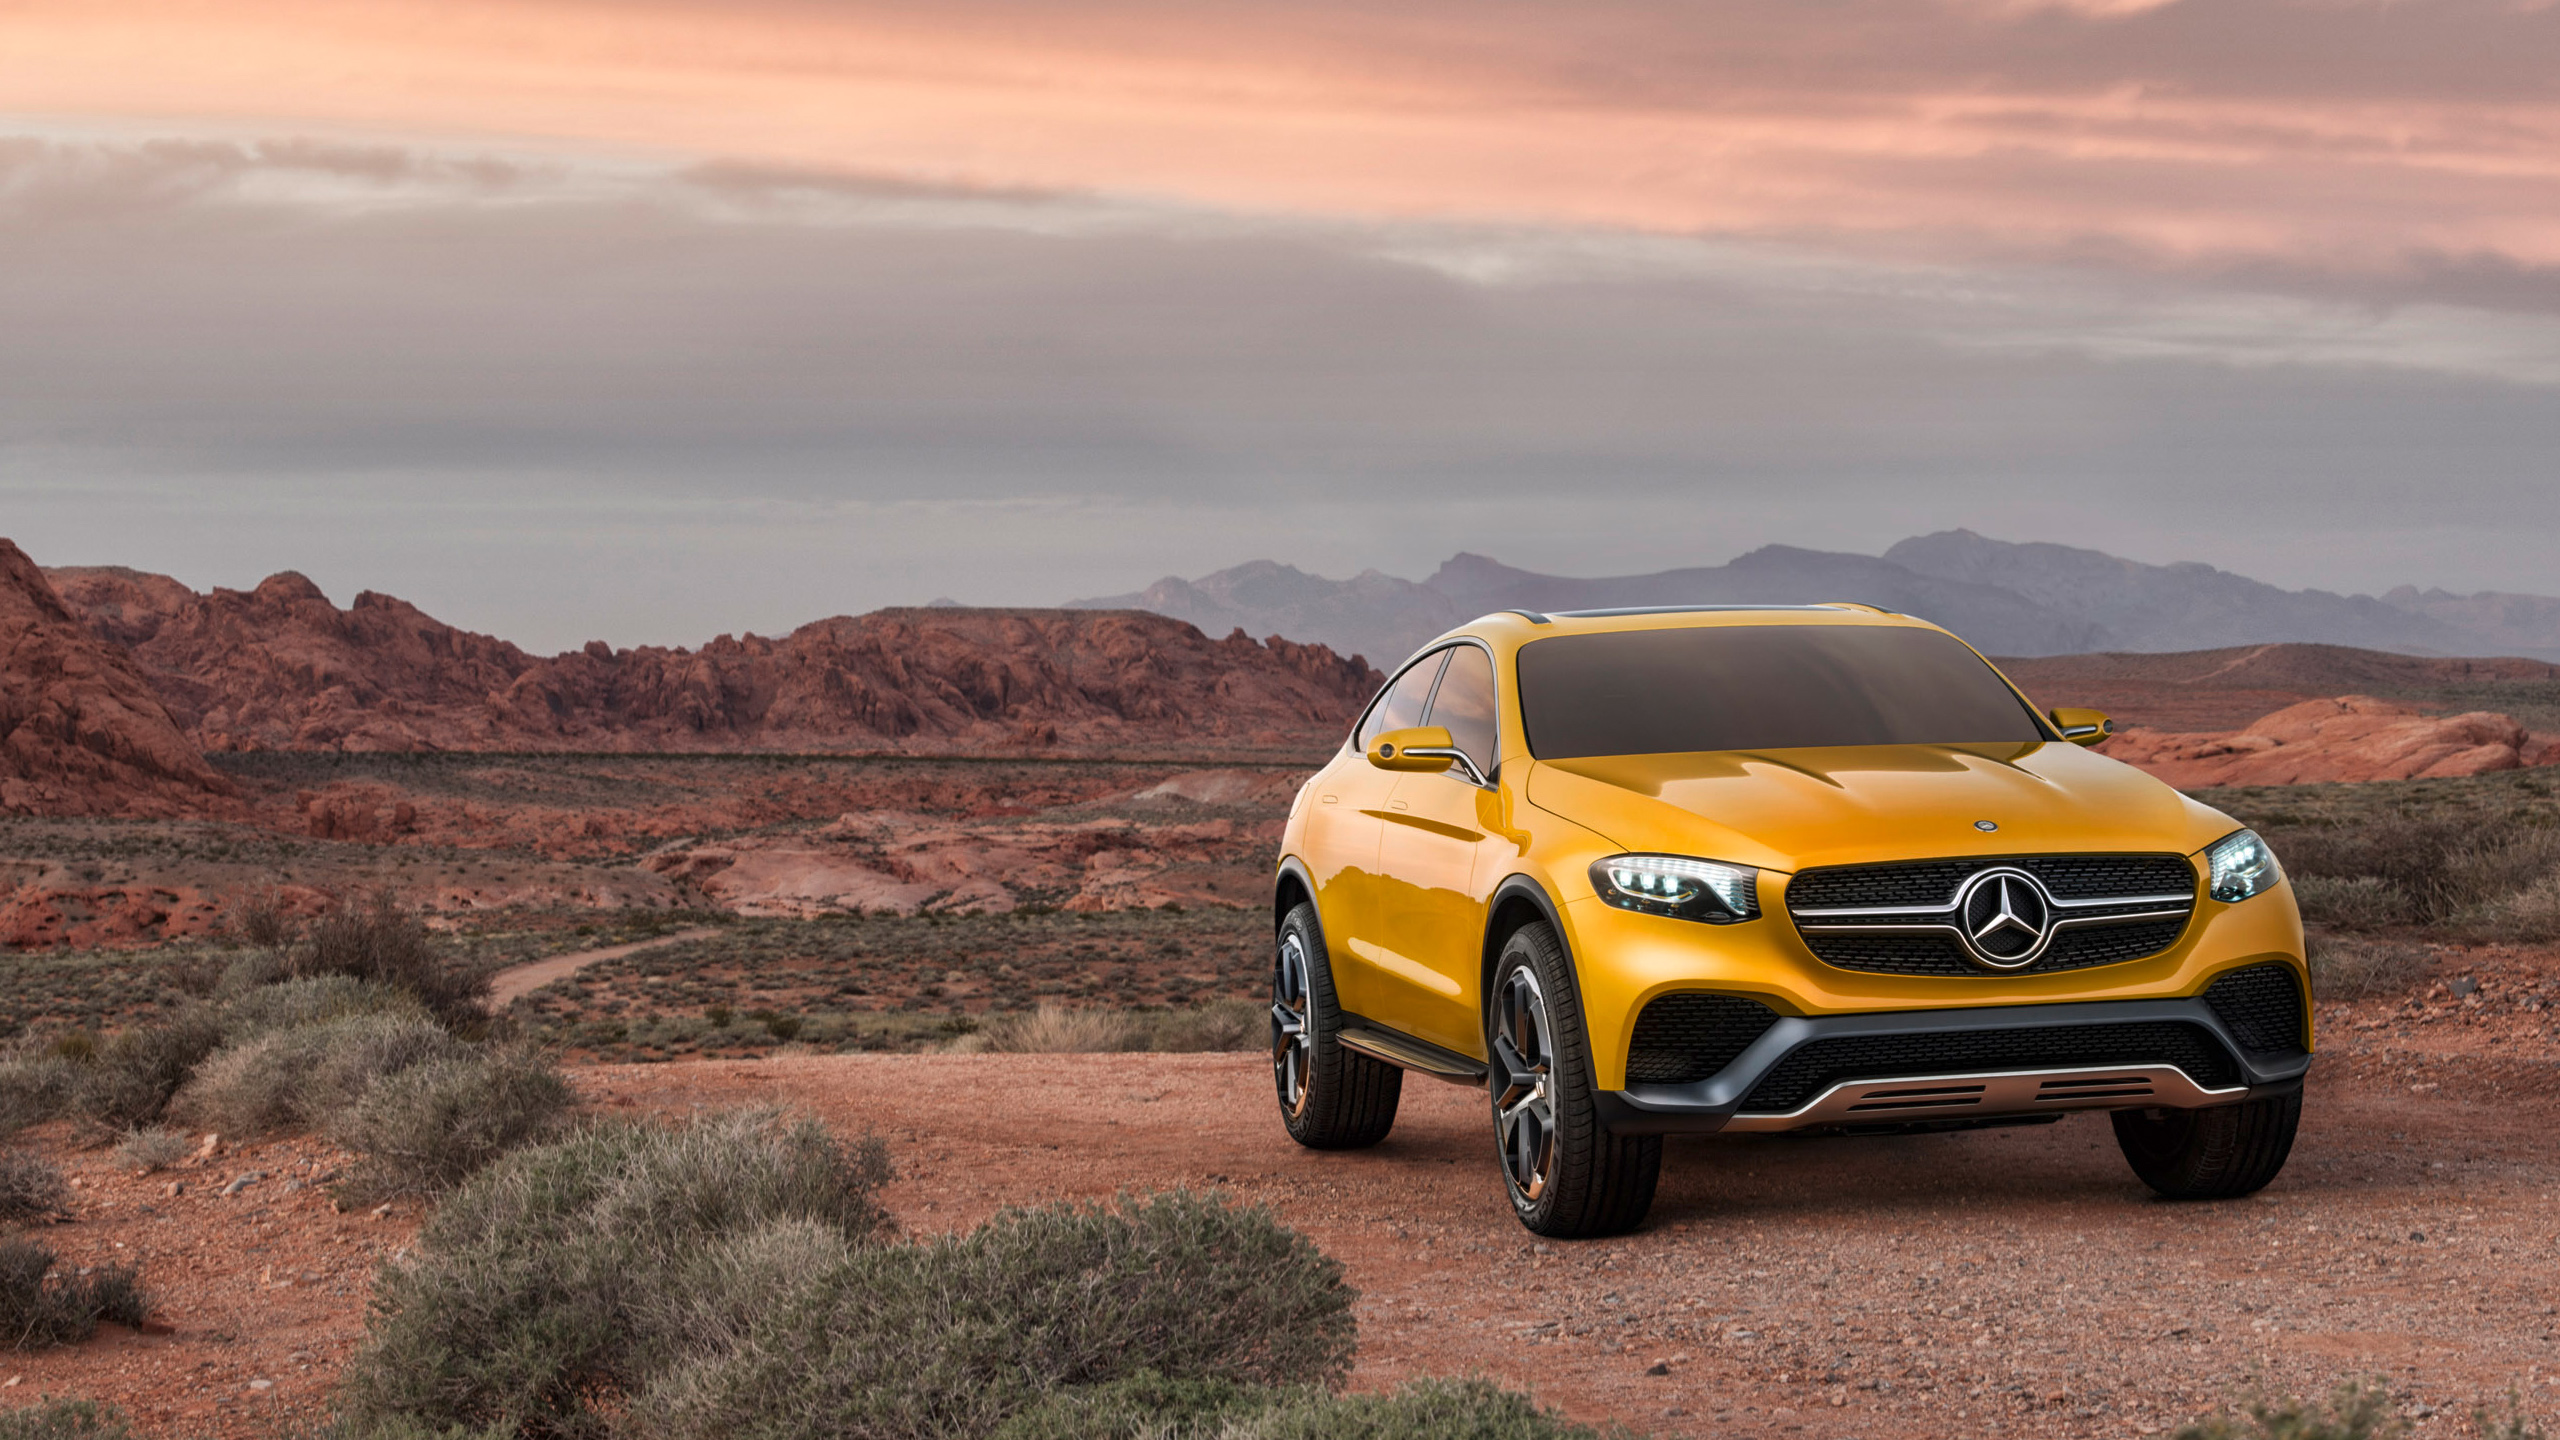 2015 Mercedes Benz GLC Coupe Concept Wallpapers